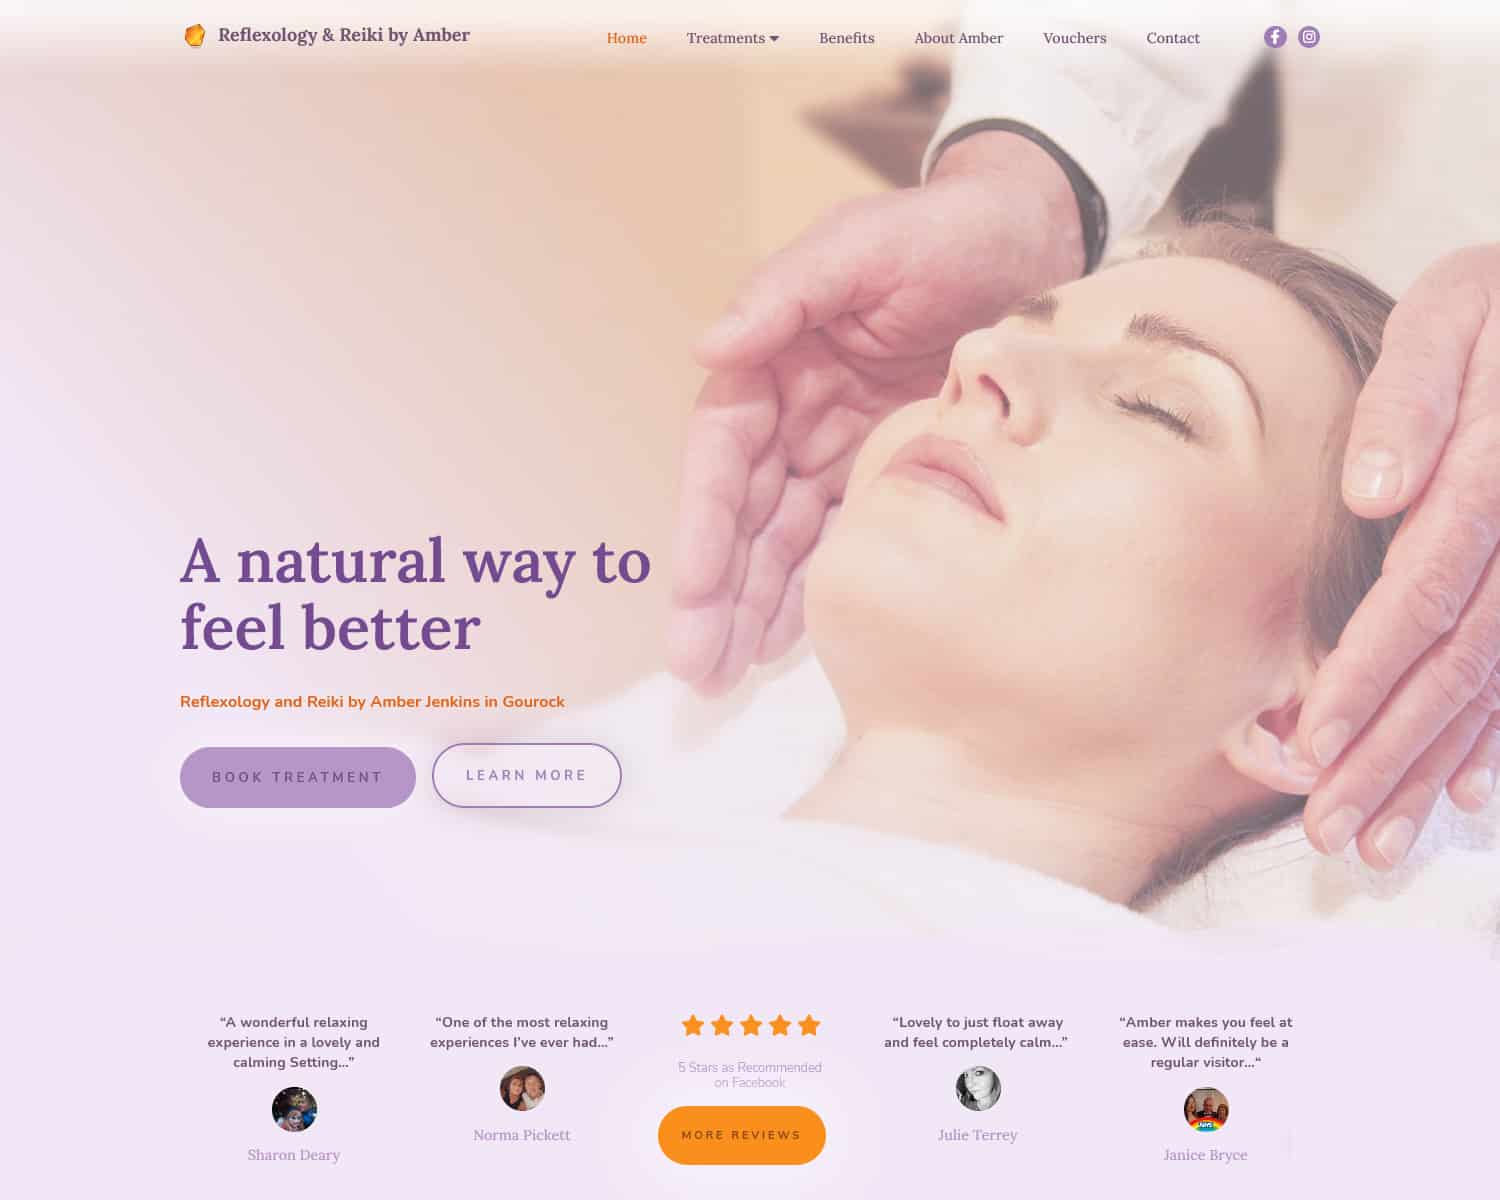 website homepage design for therapist business in Gourock